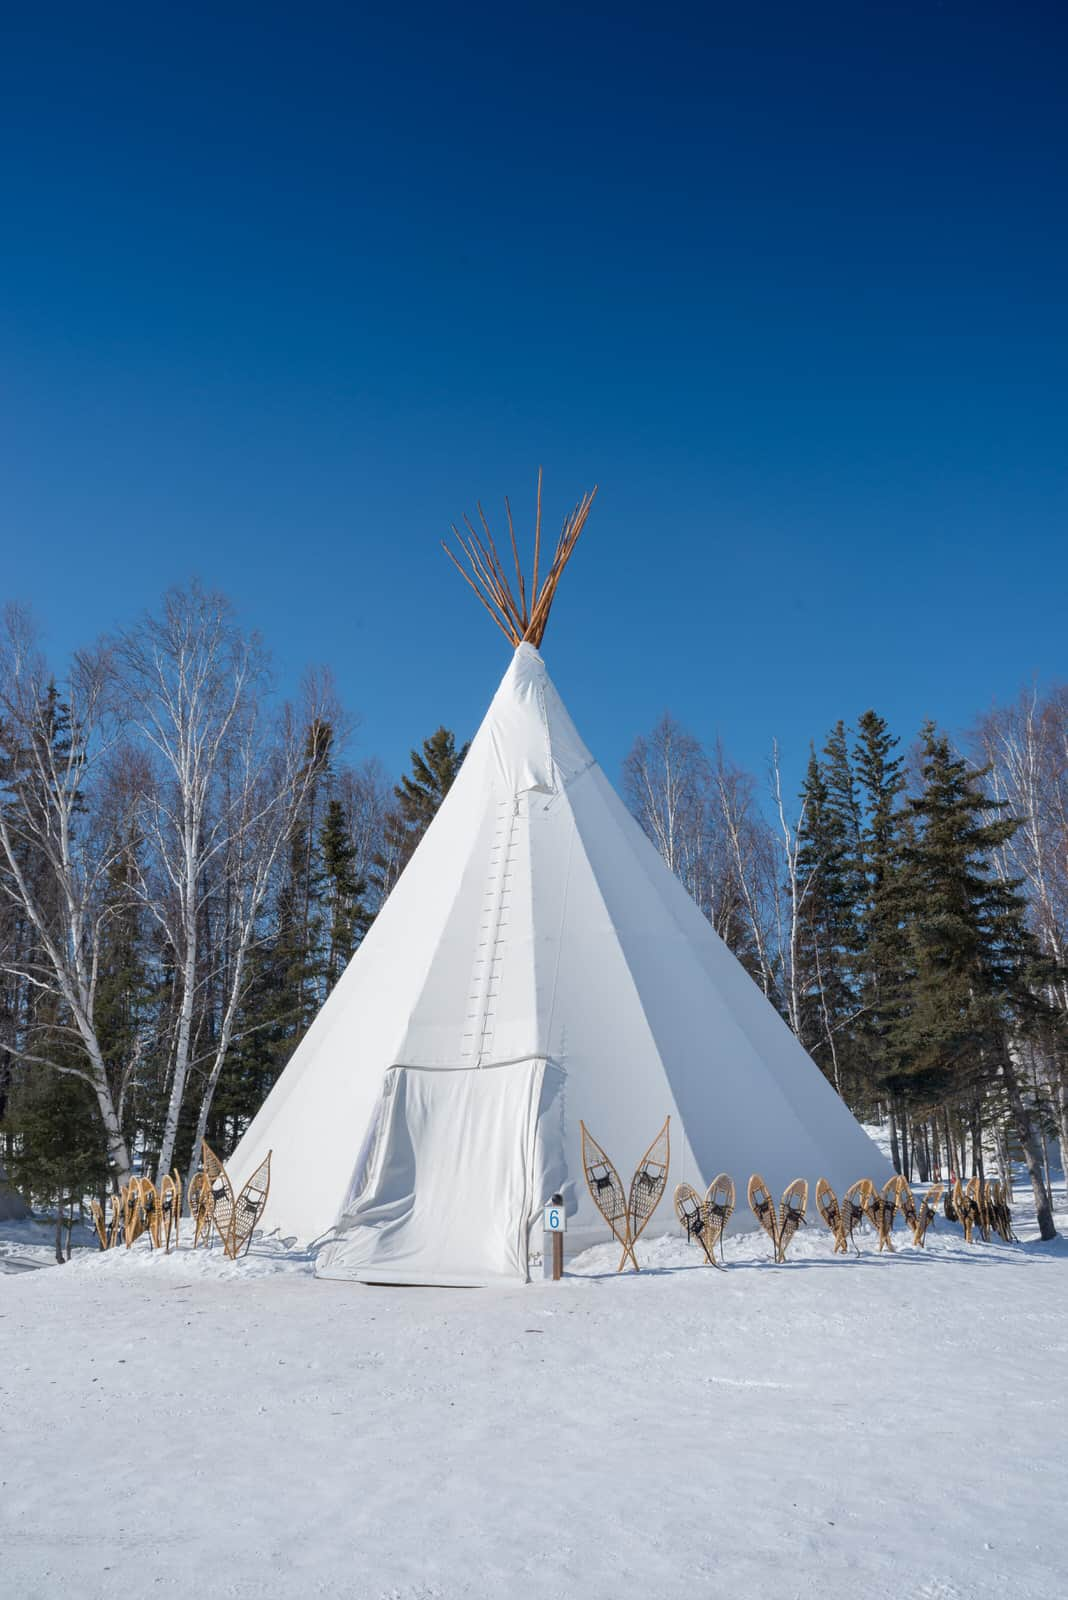 urora-Village-Yellowknife-Northwest-Territories-Canada-winter-teepee